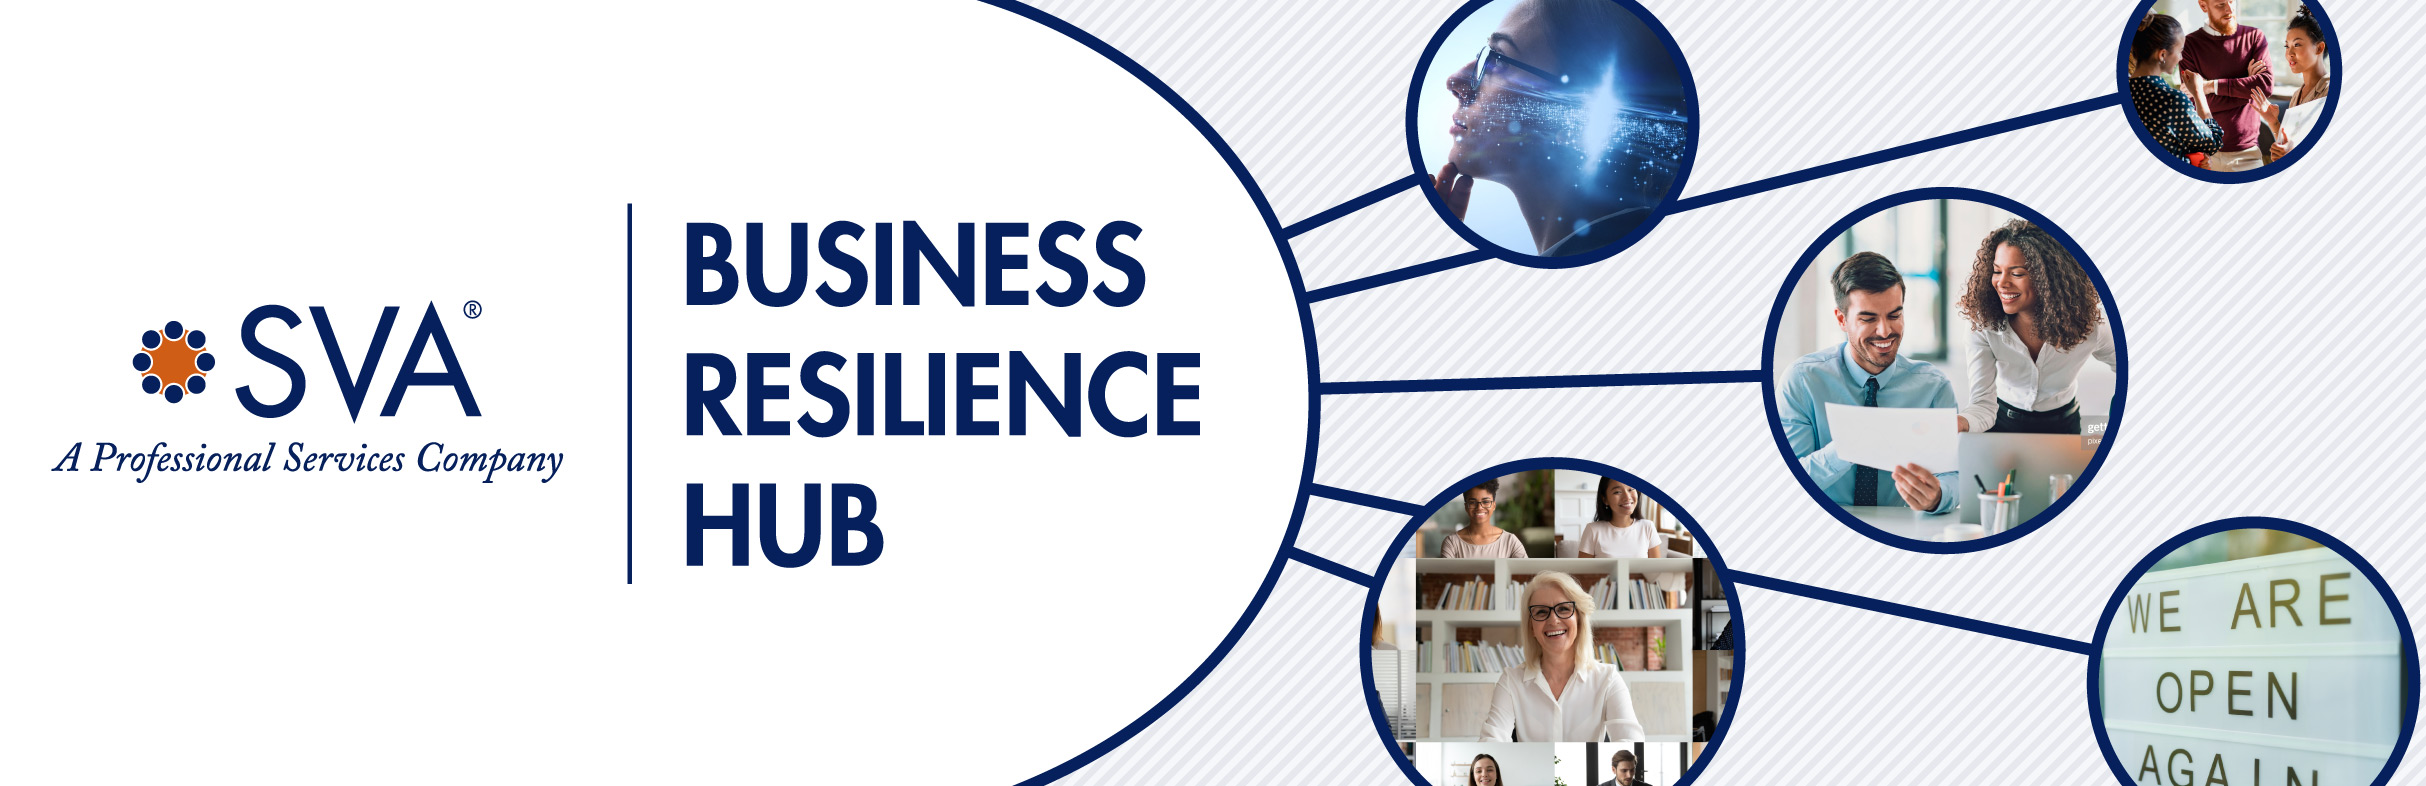 sva-a-professional-services-company-business-resilience-hub-header